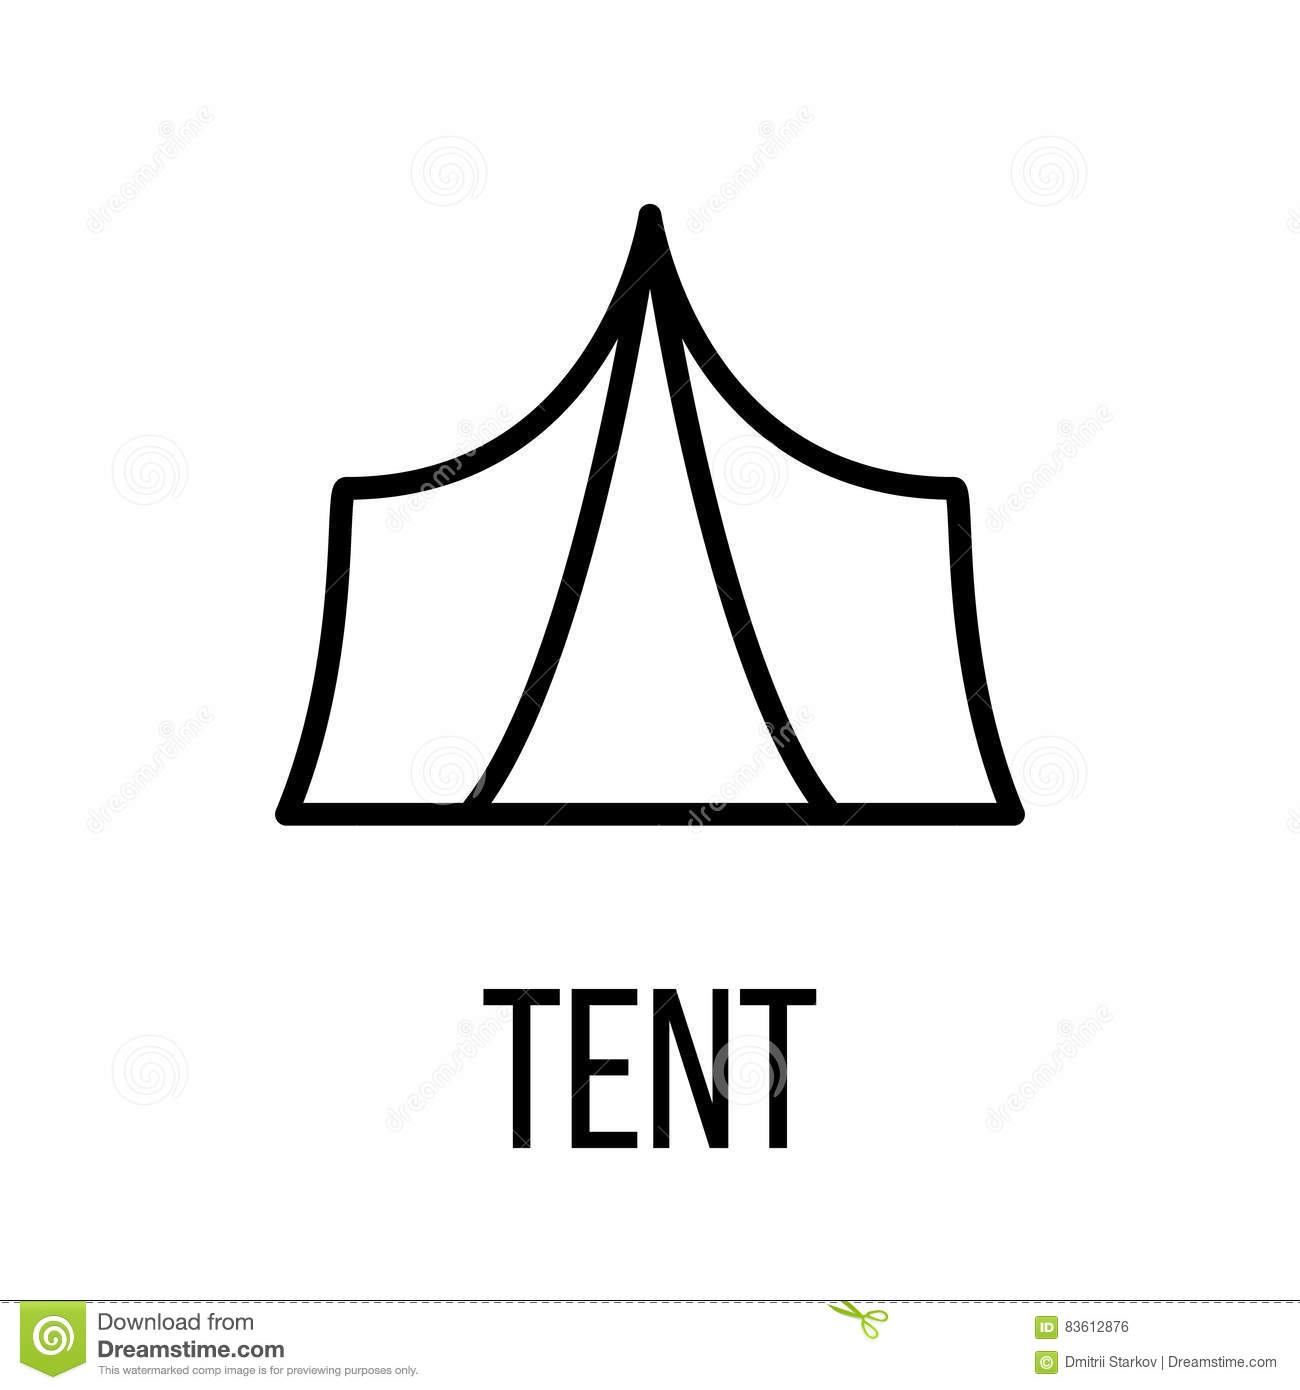 Tent icon or logo in modern line style.